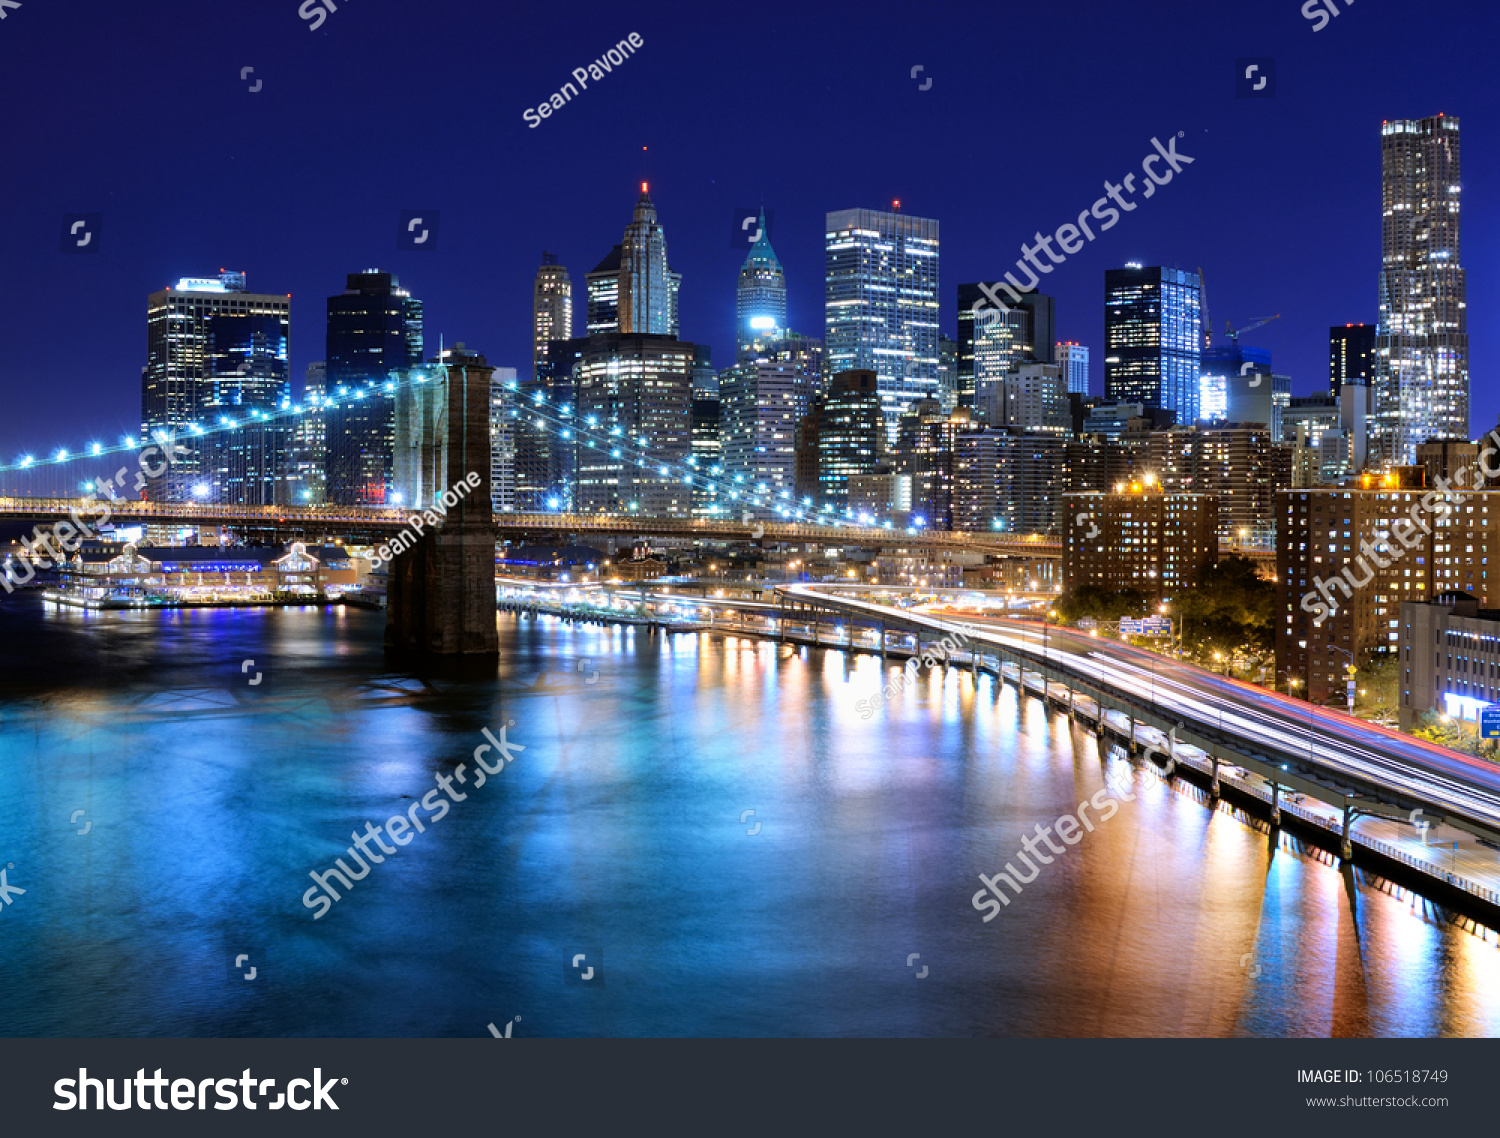 skyline downtown new york new york stock photo 106518749 shutterstock. Black Bedroom Furniture Sets. Home Design Ideas